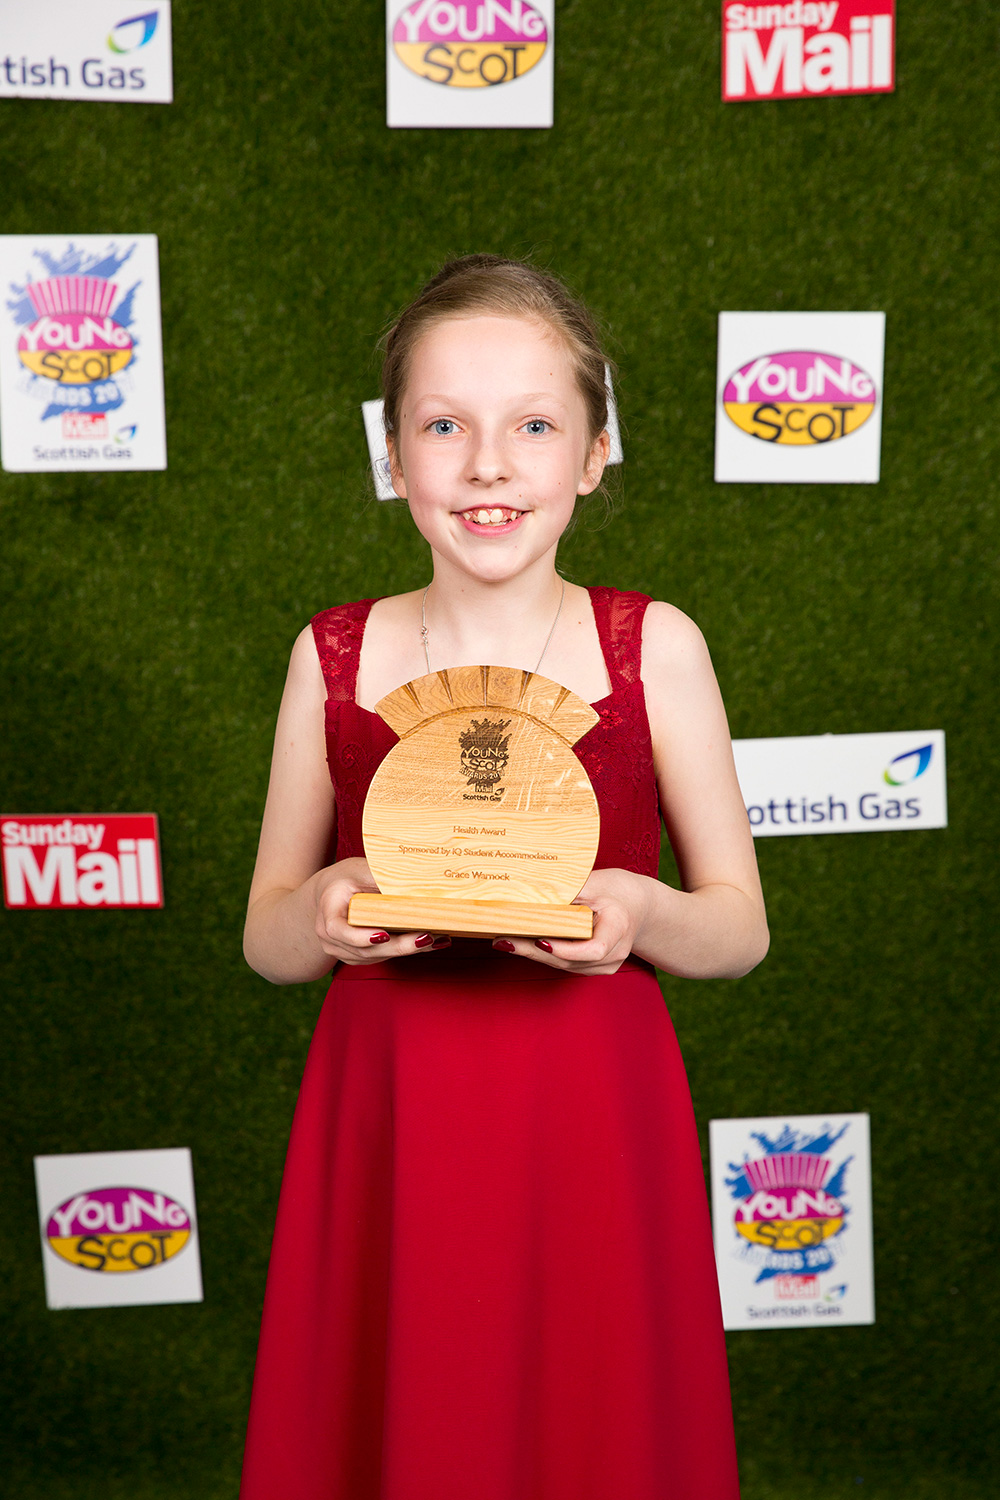 Grace, a young girl, wearing a red dress and holding up her Young Scot award